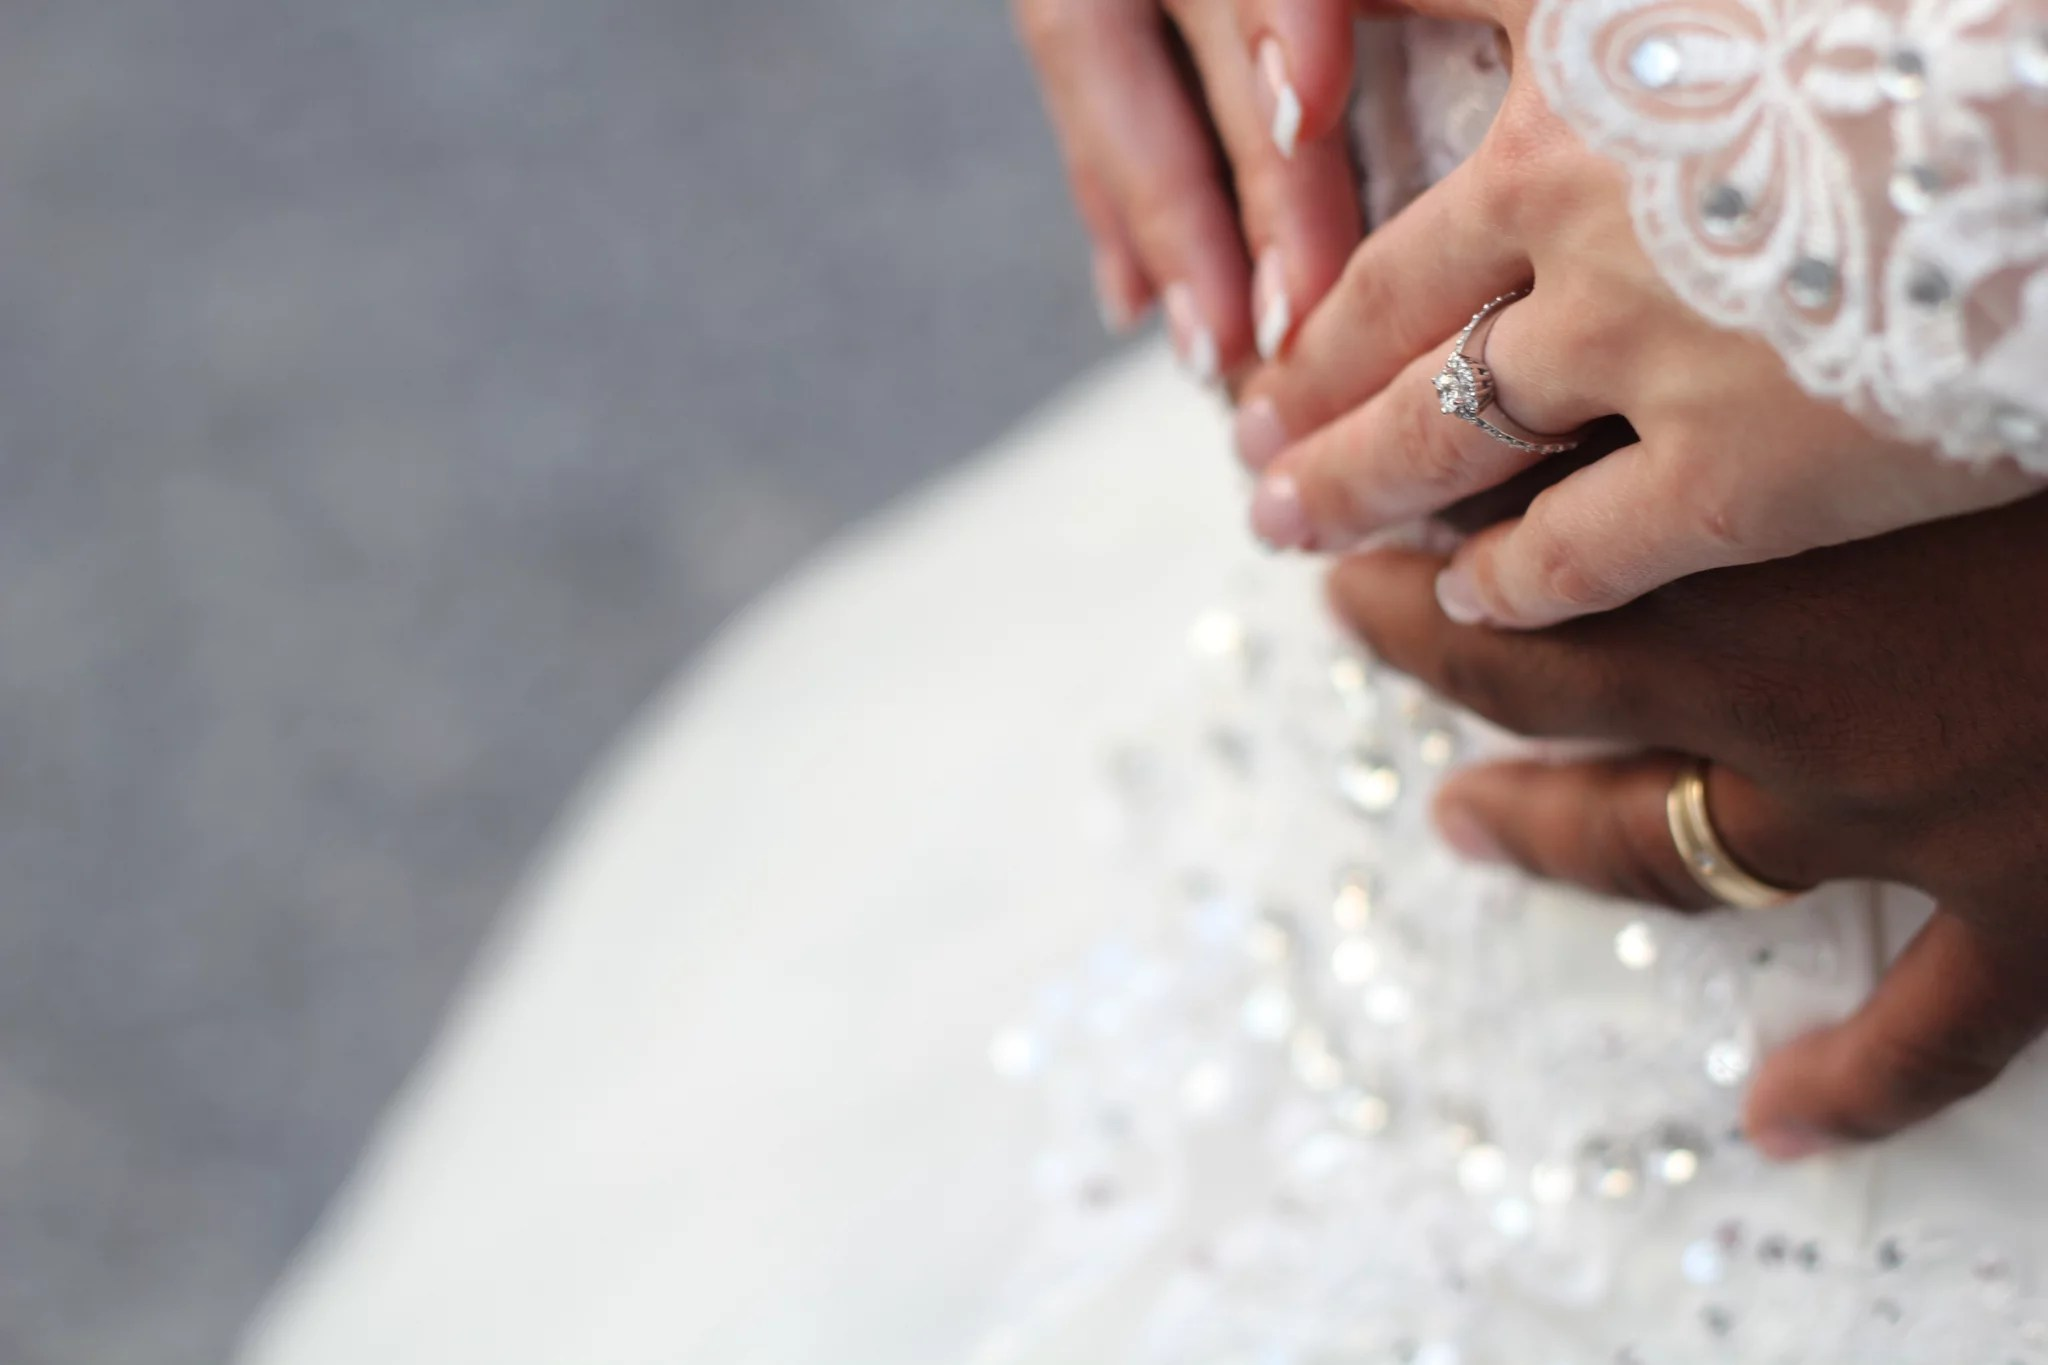 Hochzeit Islam Which Hand Does Your Wedding Ring Go On Popsugar Love And Sex